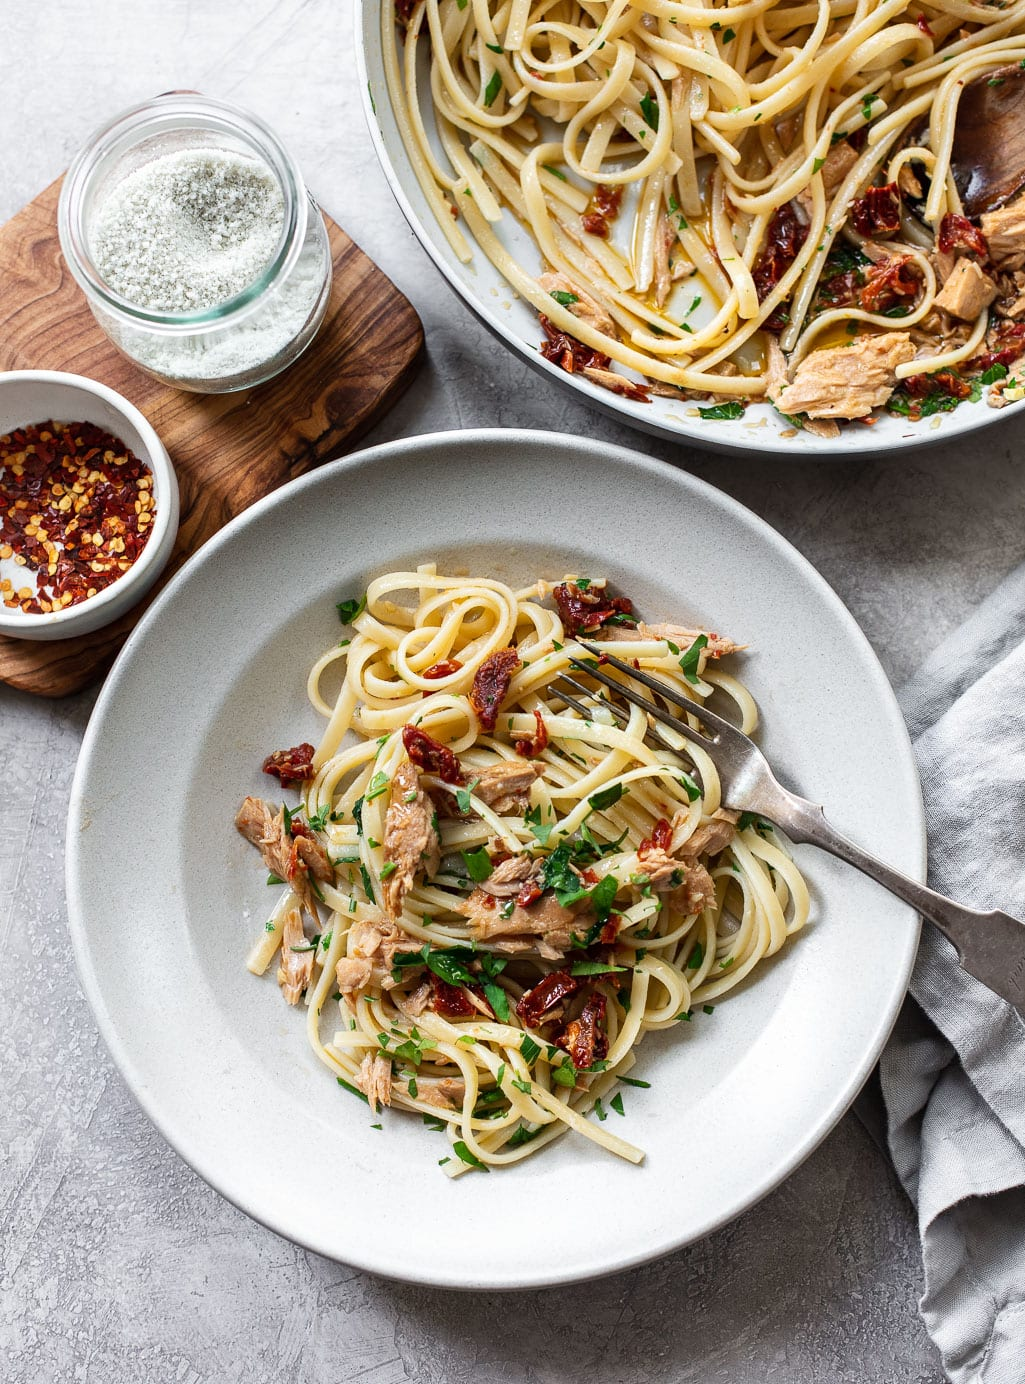 Olive Oil and Garlic Tuna Pasta Recipe